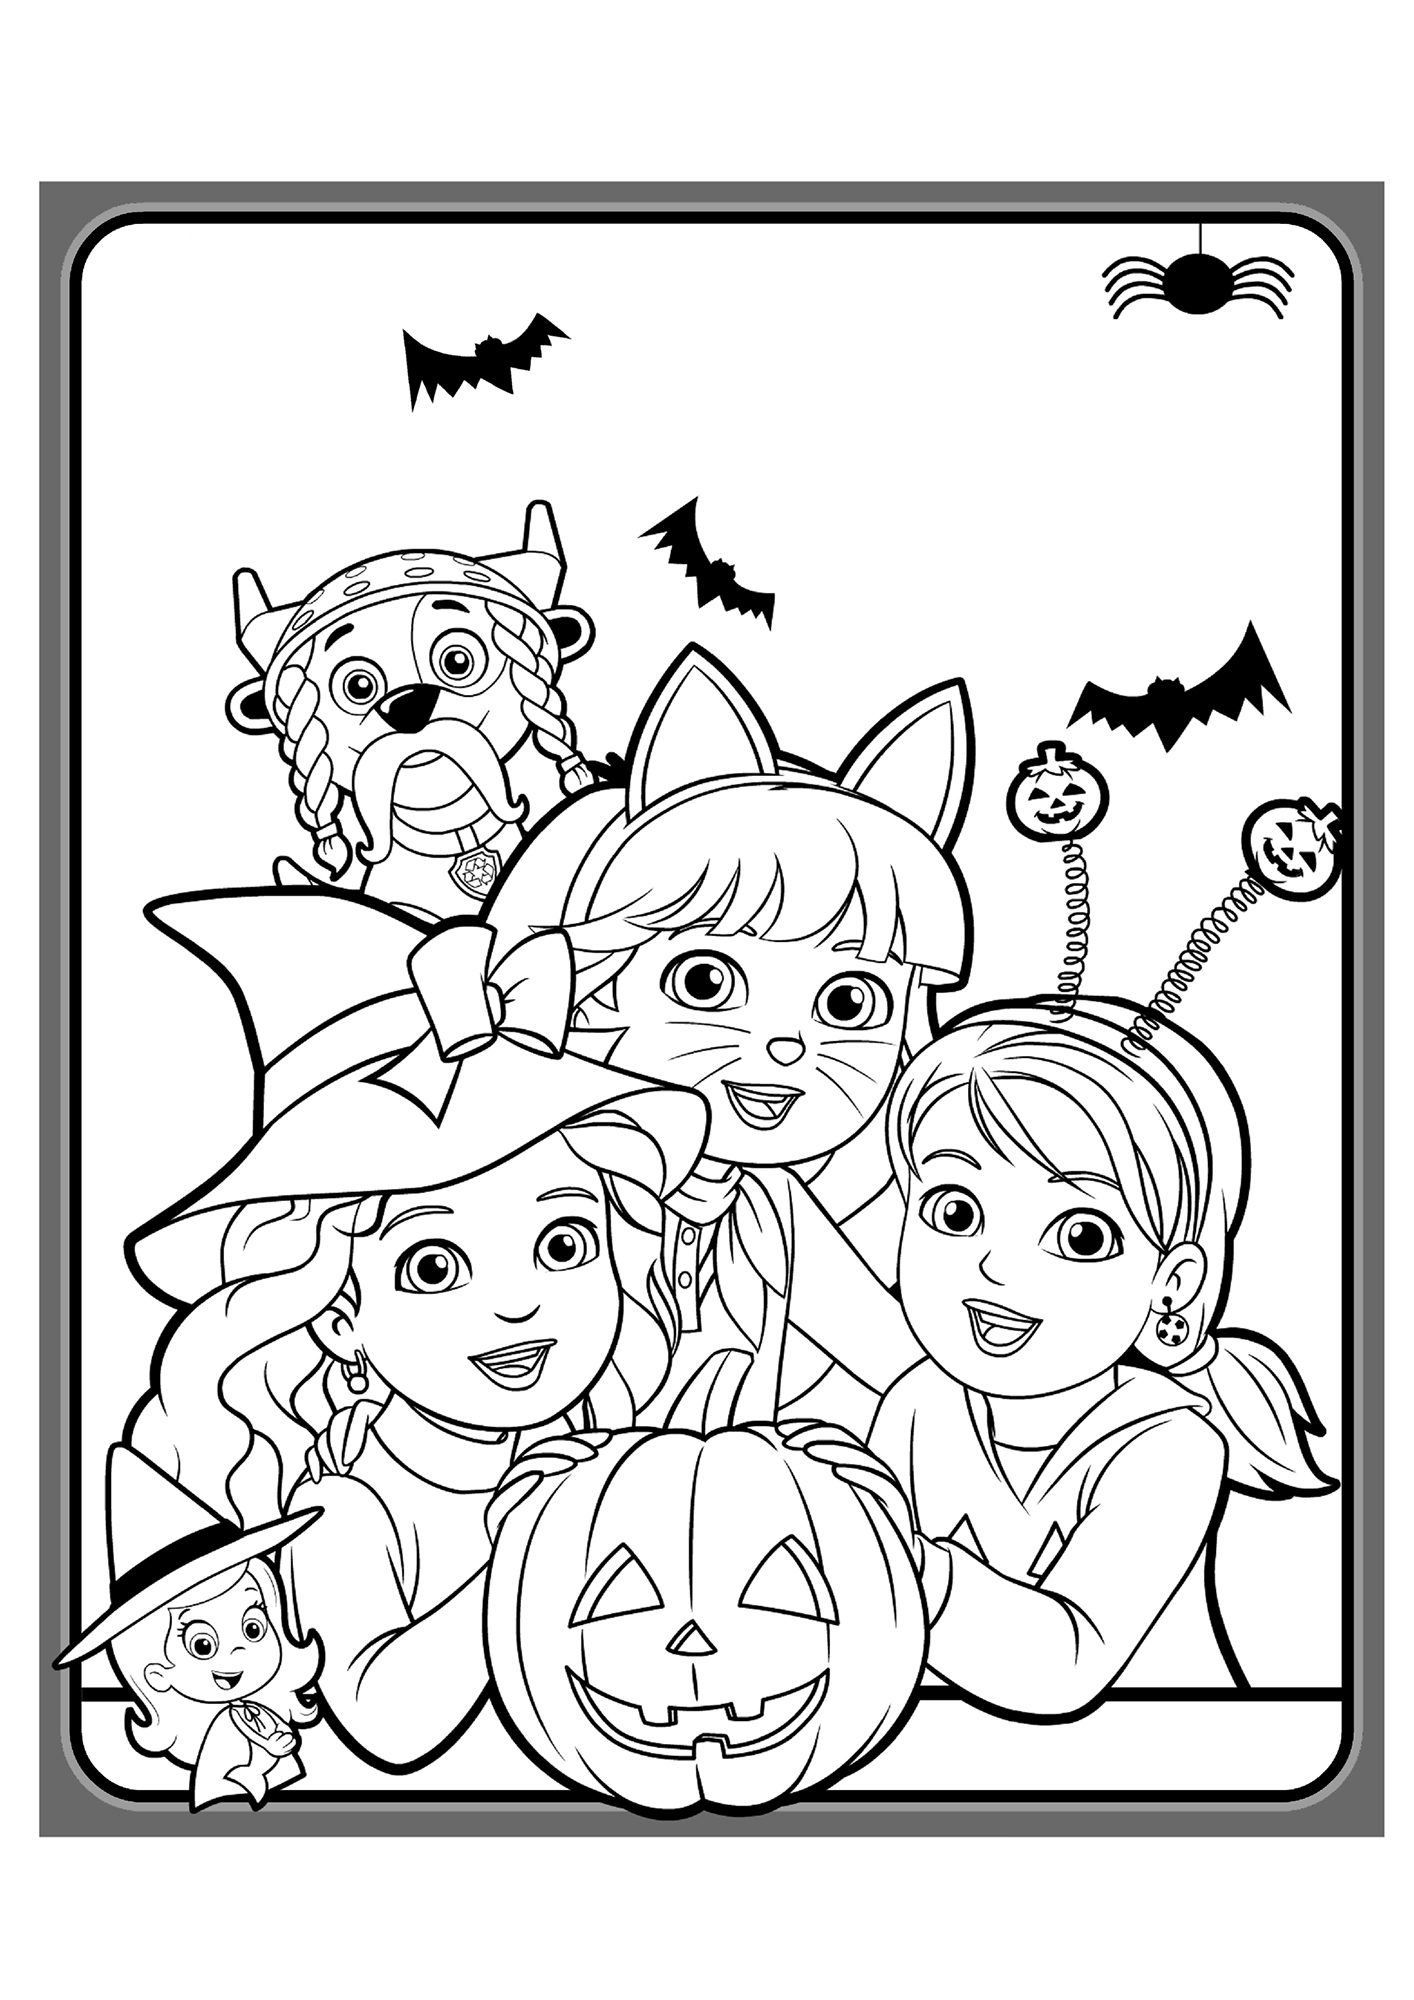 coloring pages dora and friends dora and friends coloring pages coloring home coloring and dora friends pages